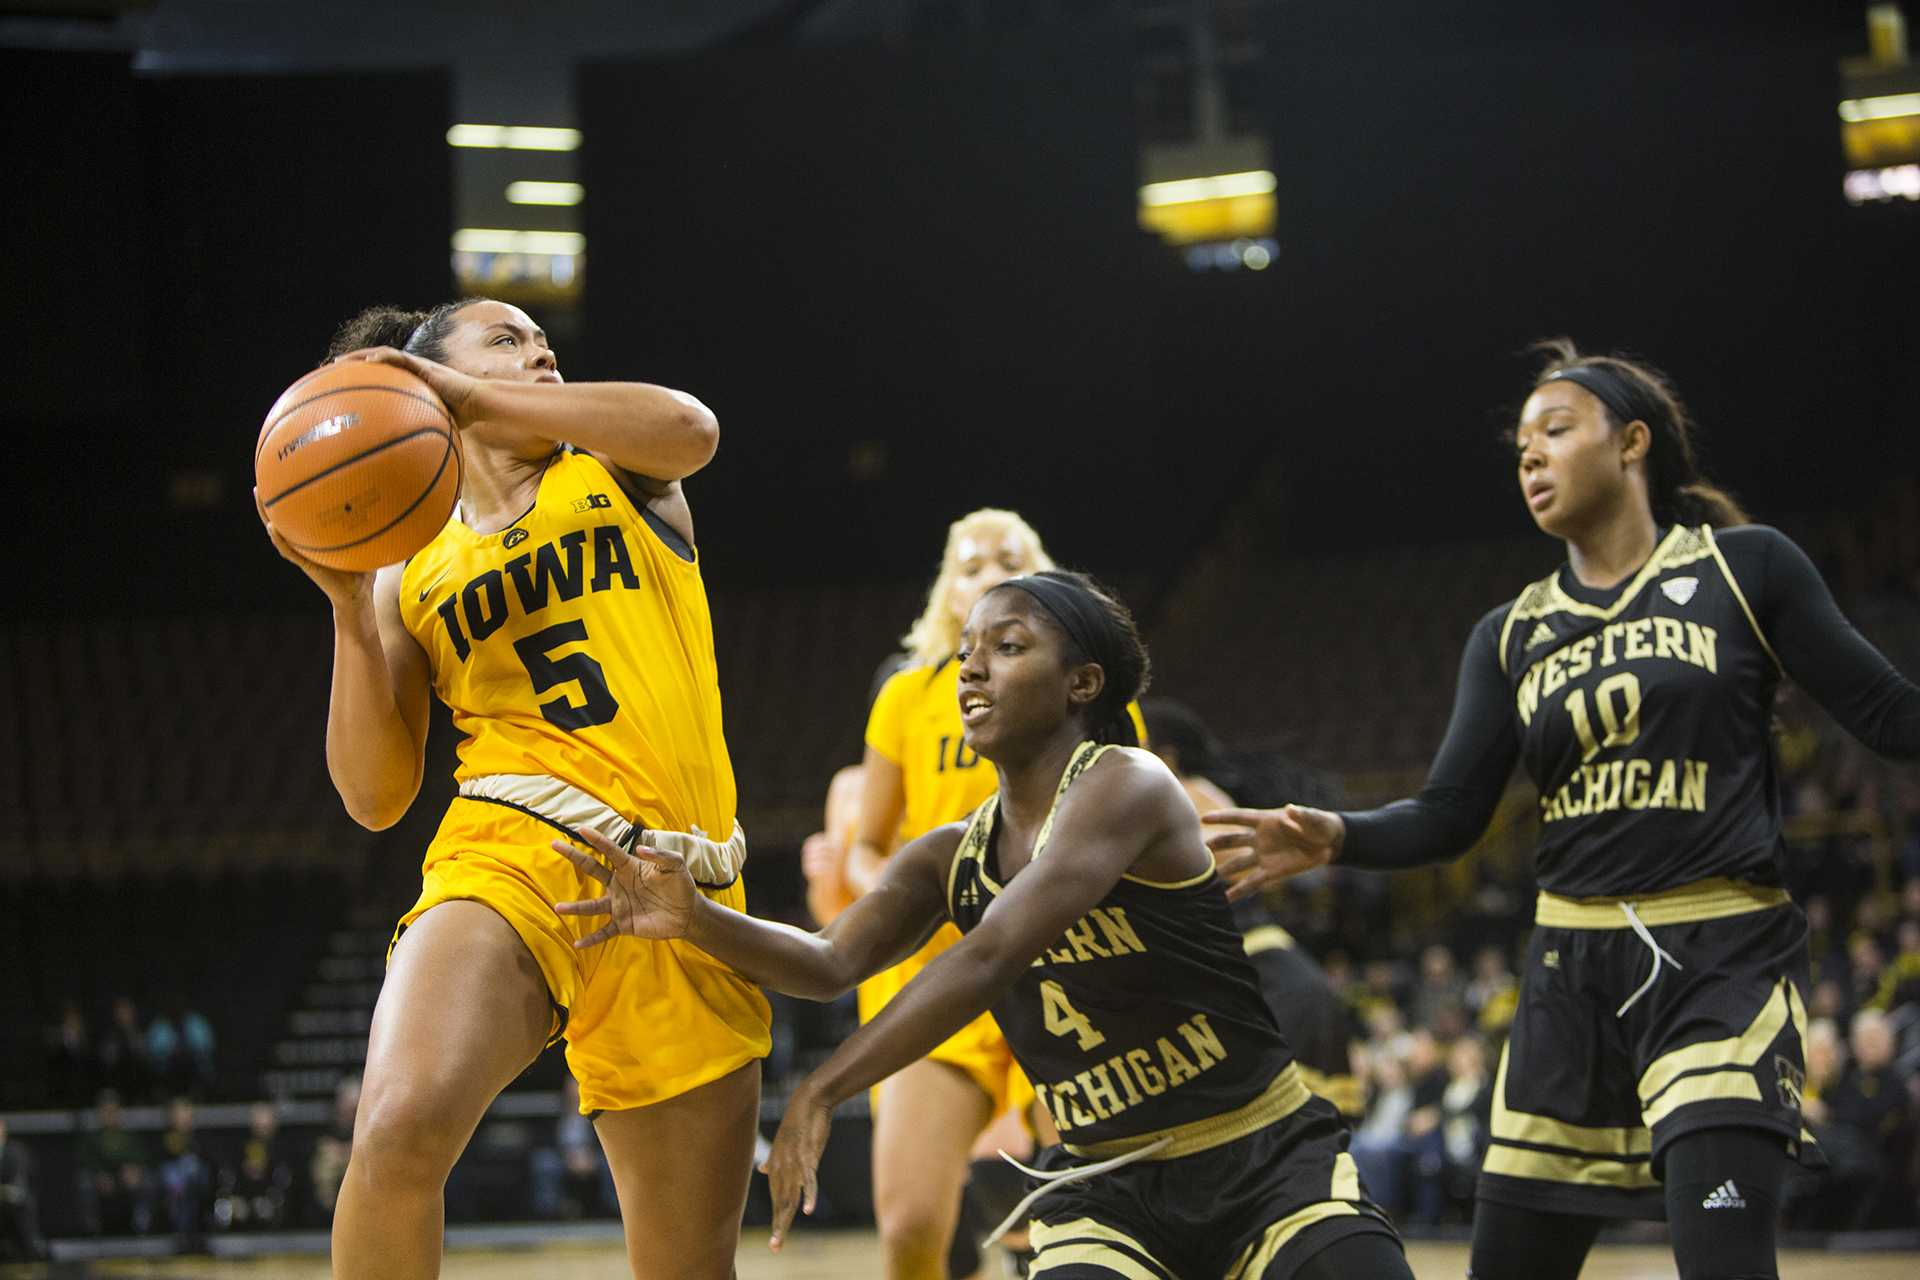 Iowa guard Alexis Sevillian takes a shot over Western Michigan guard Deja Wimbly during the Iowa/Western Michigan women's basketball game in Carver-Hawkeye Arena on Sunday, Nov. 19, 2017. The Hawkeyes defeated the Broncos, 79-56. (Joseph Cress/The Daily Iowan)